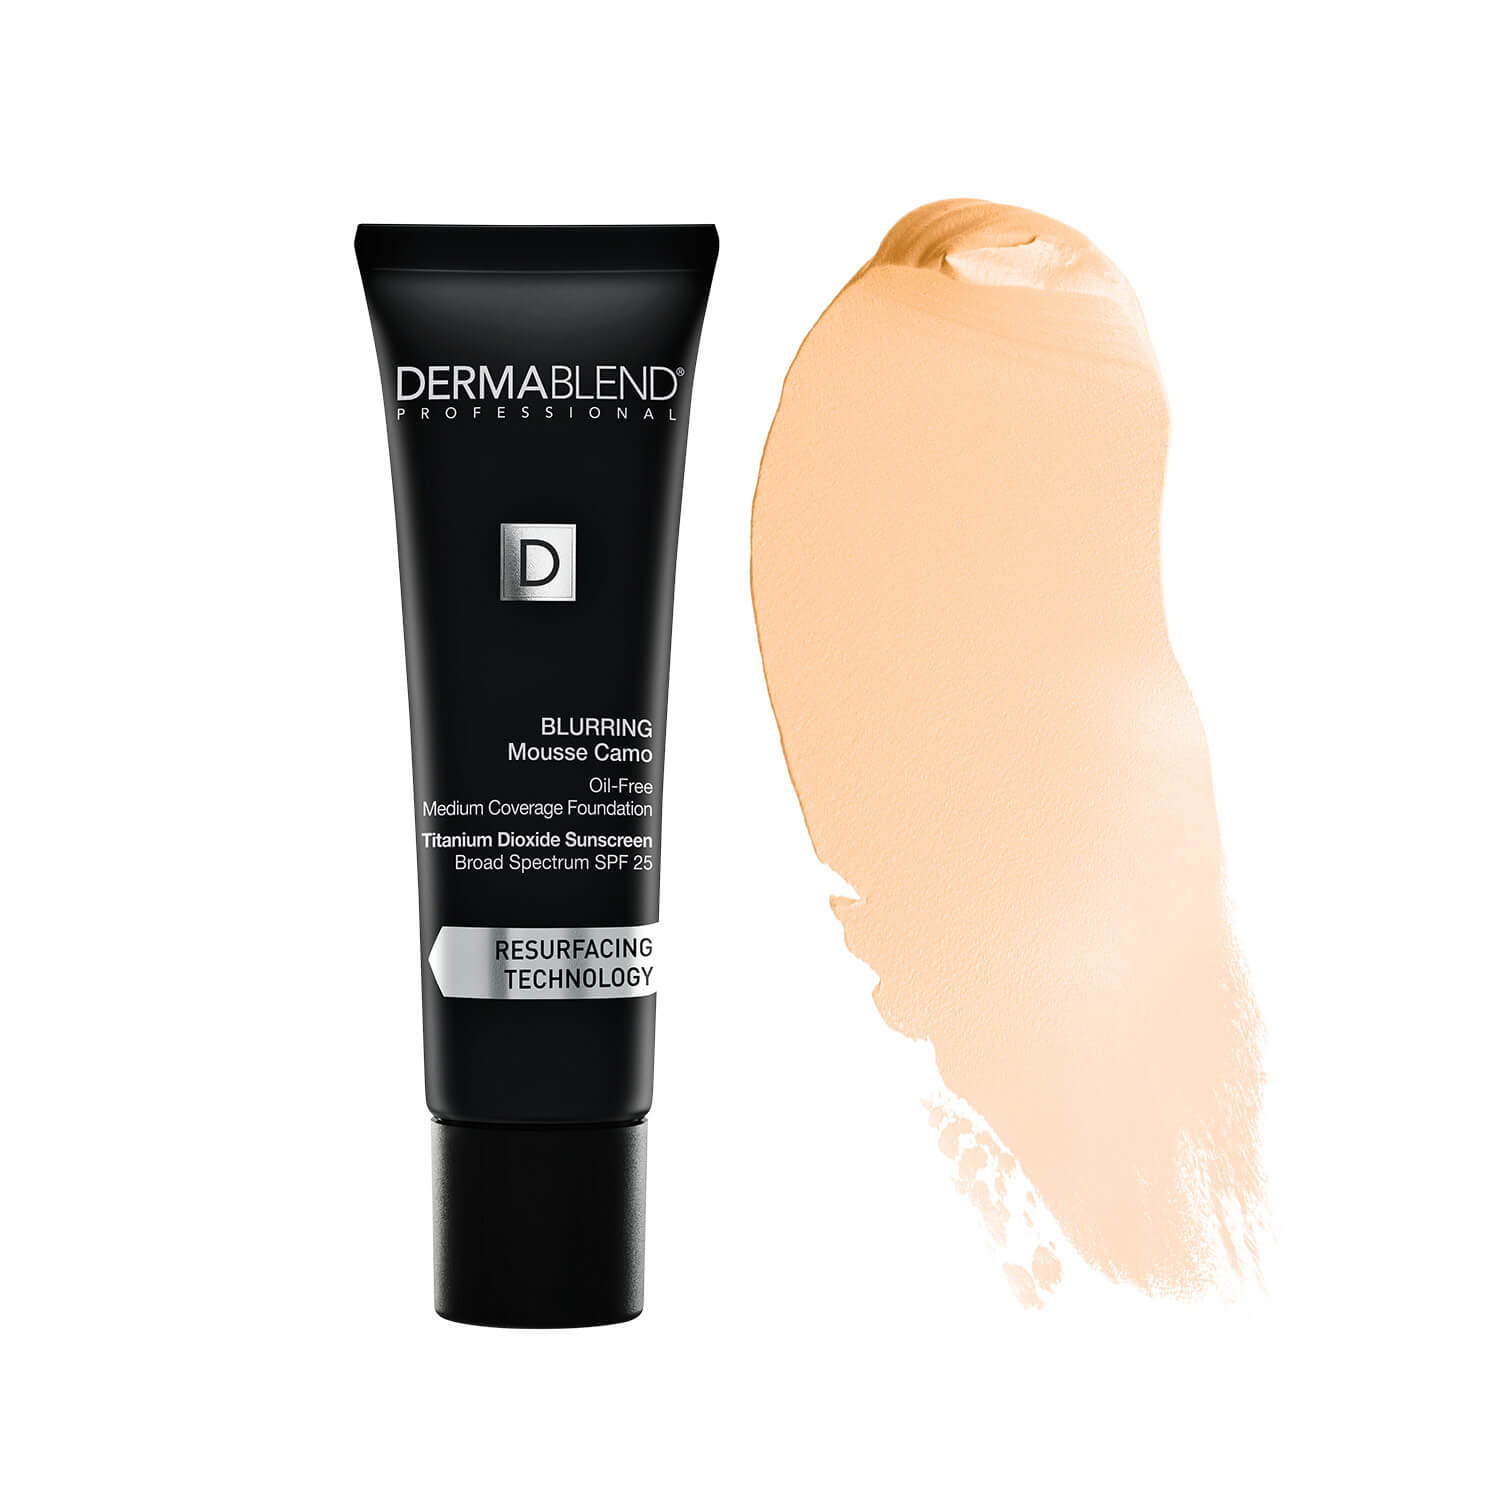 Dermablend Blurring Mousse Foundation Make-Up with SPF25 for Oil-Free Medium to High Coverage (Various Shades)